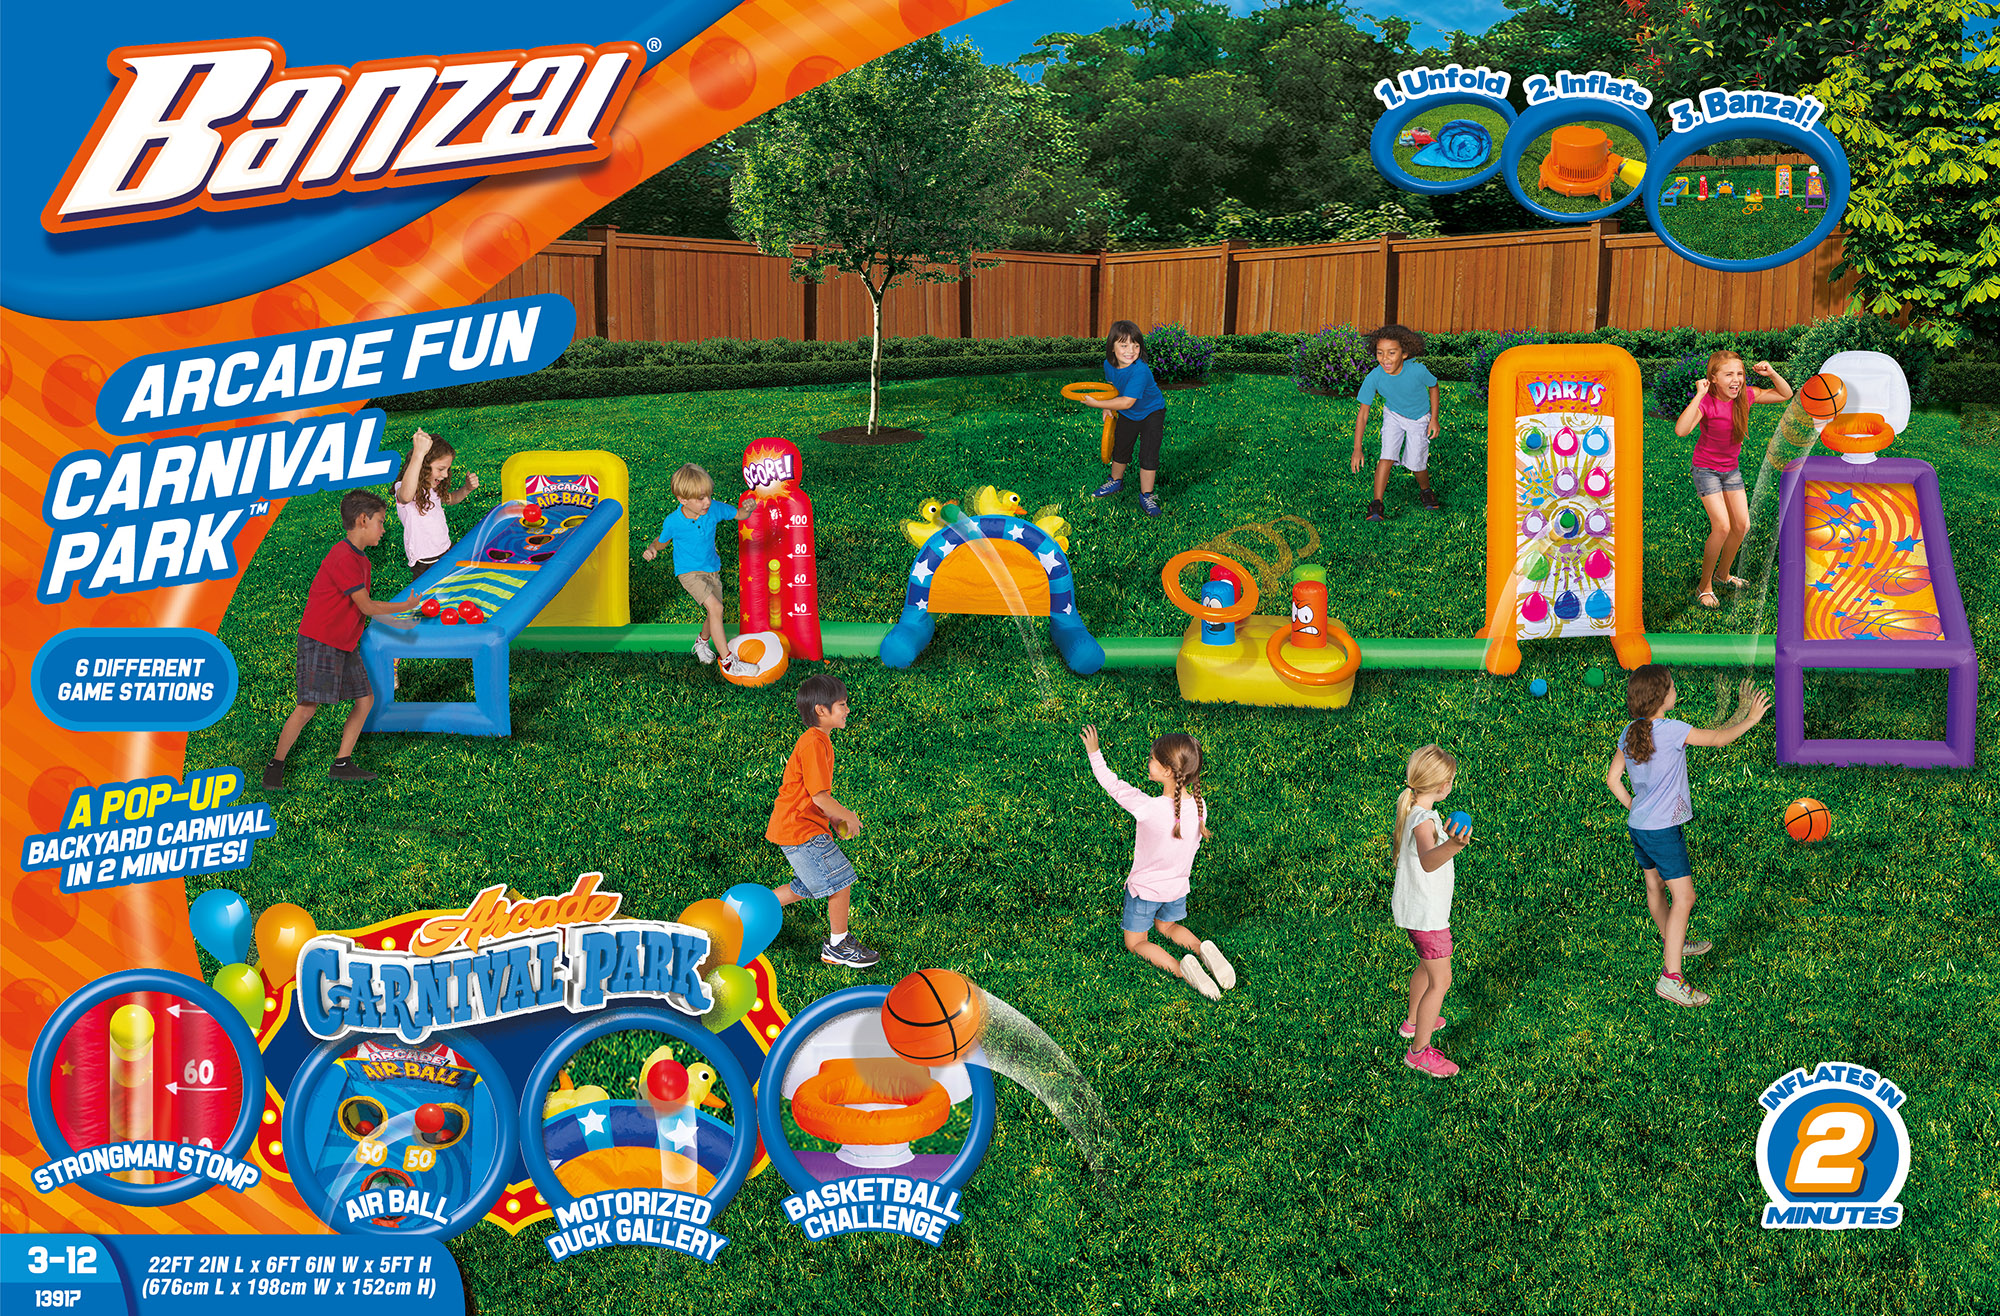 Banzai Arcade Fun Carnival Park (Inflatable Backyard Sports Play With  Constant Air Motor Blower Included